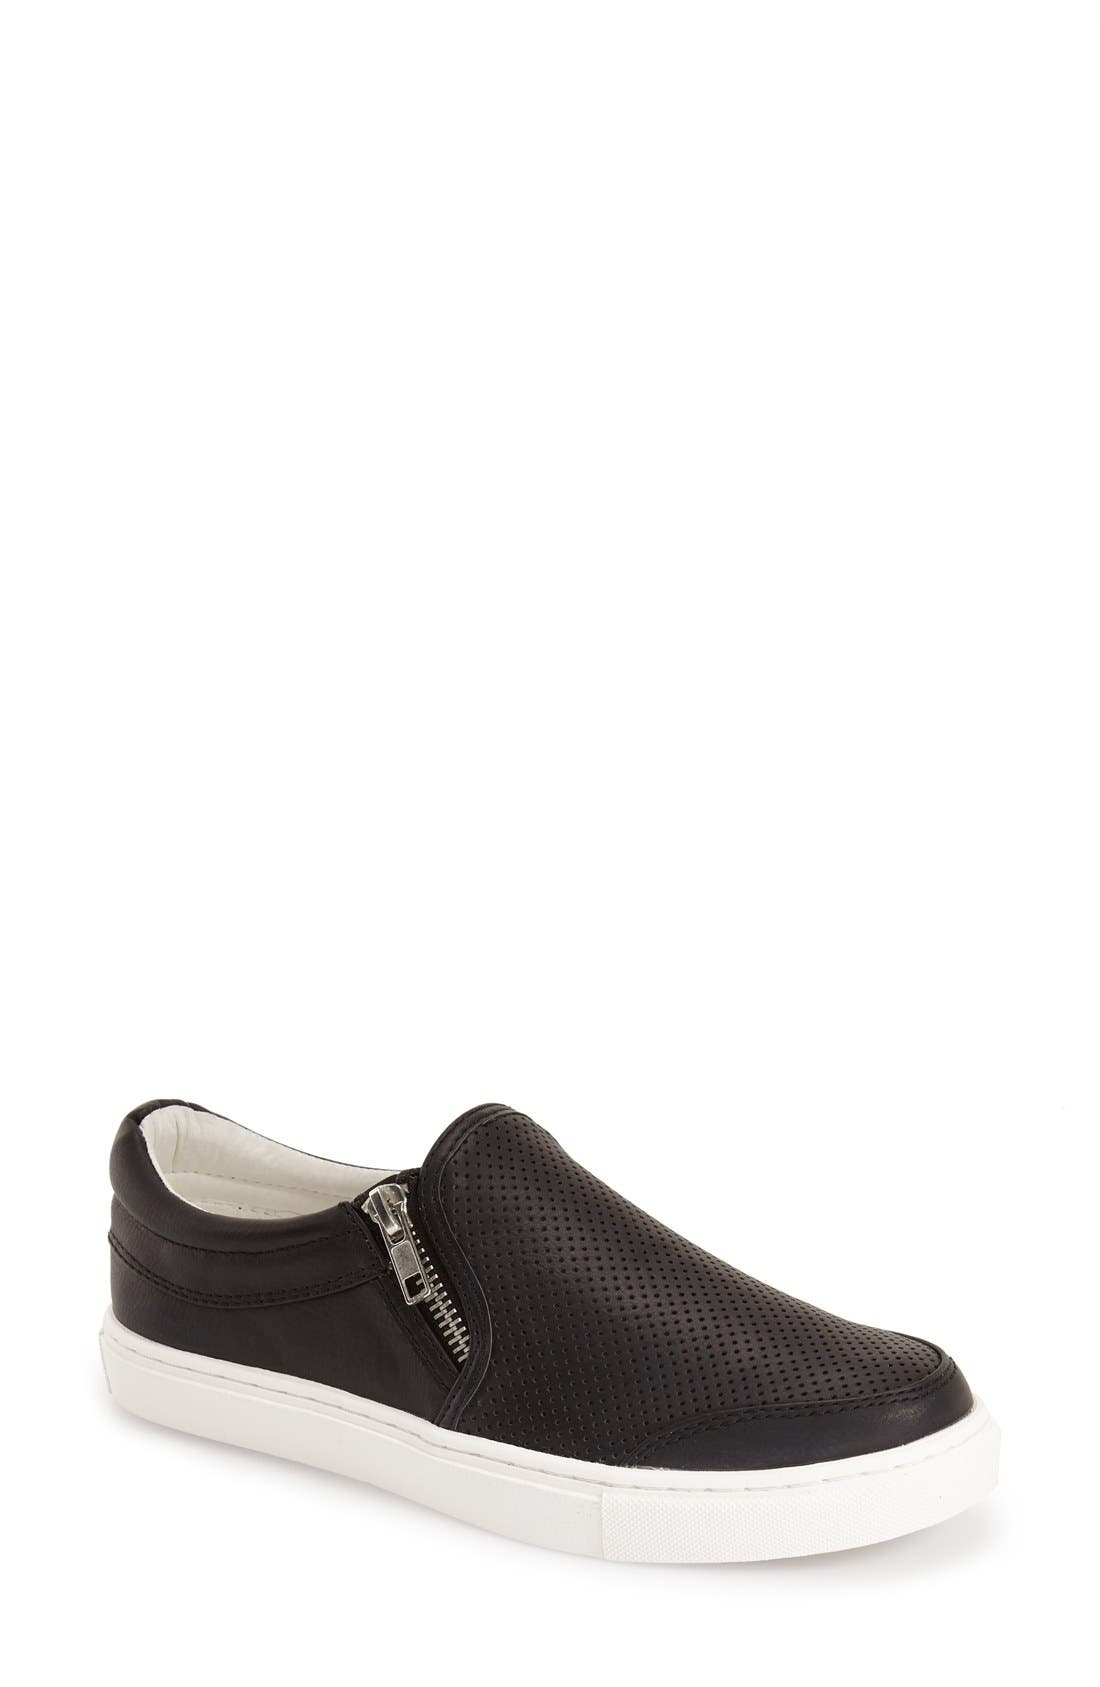 Main Image - Steve Madden 'Ellias' Slip-On Sneaker (Women)